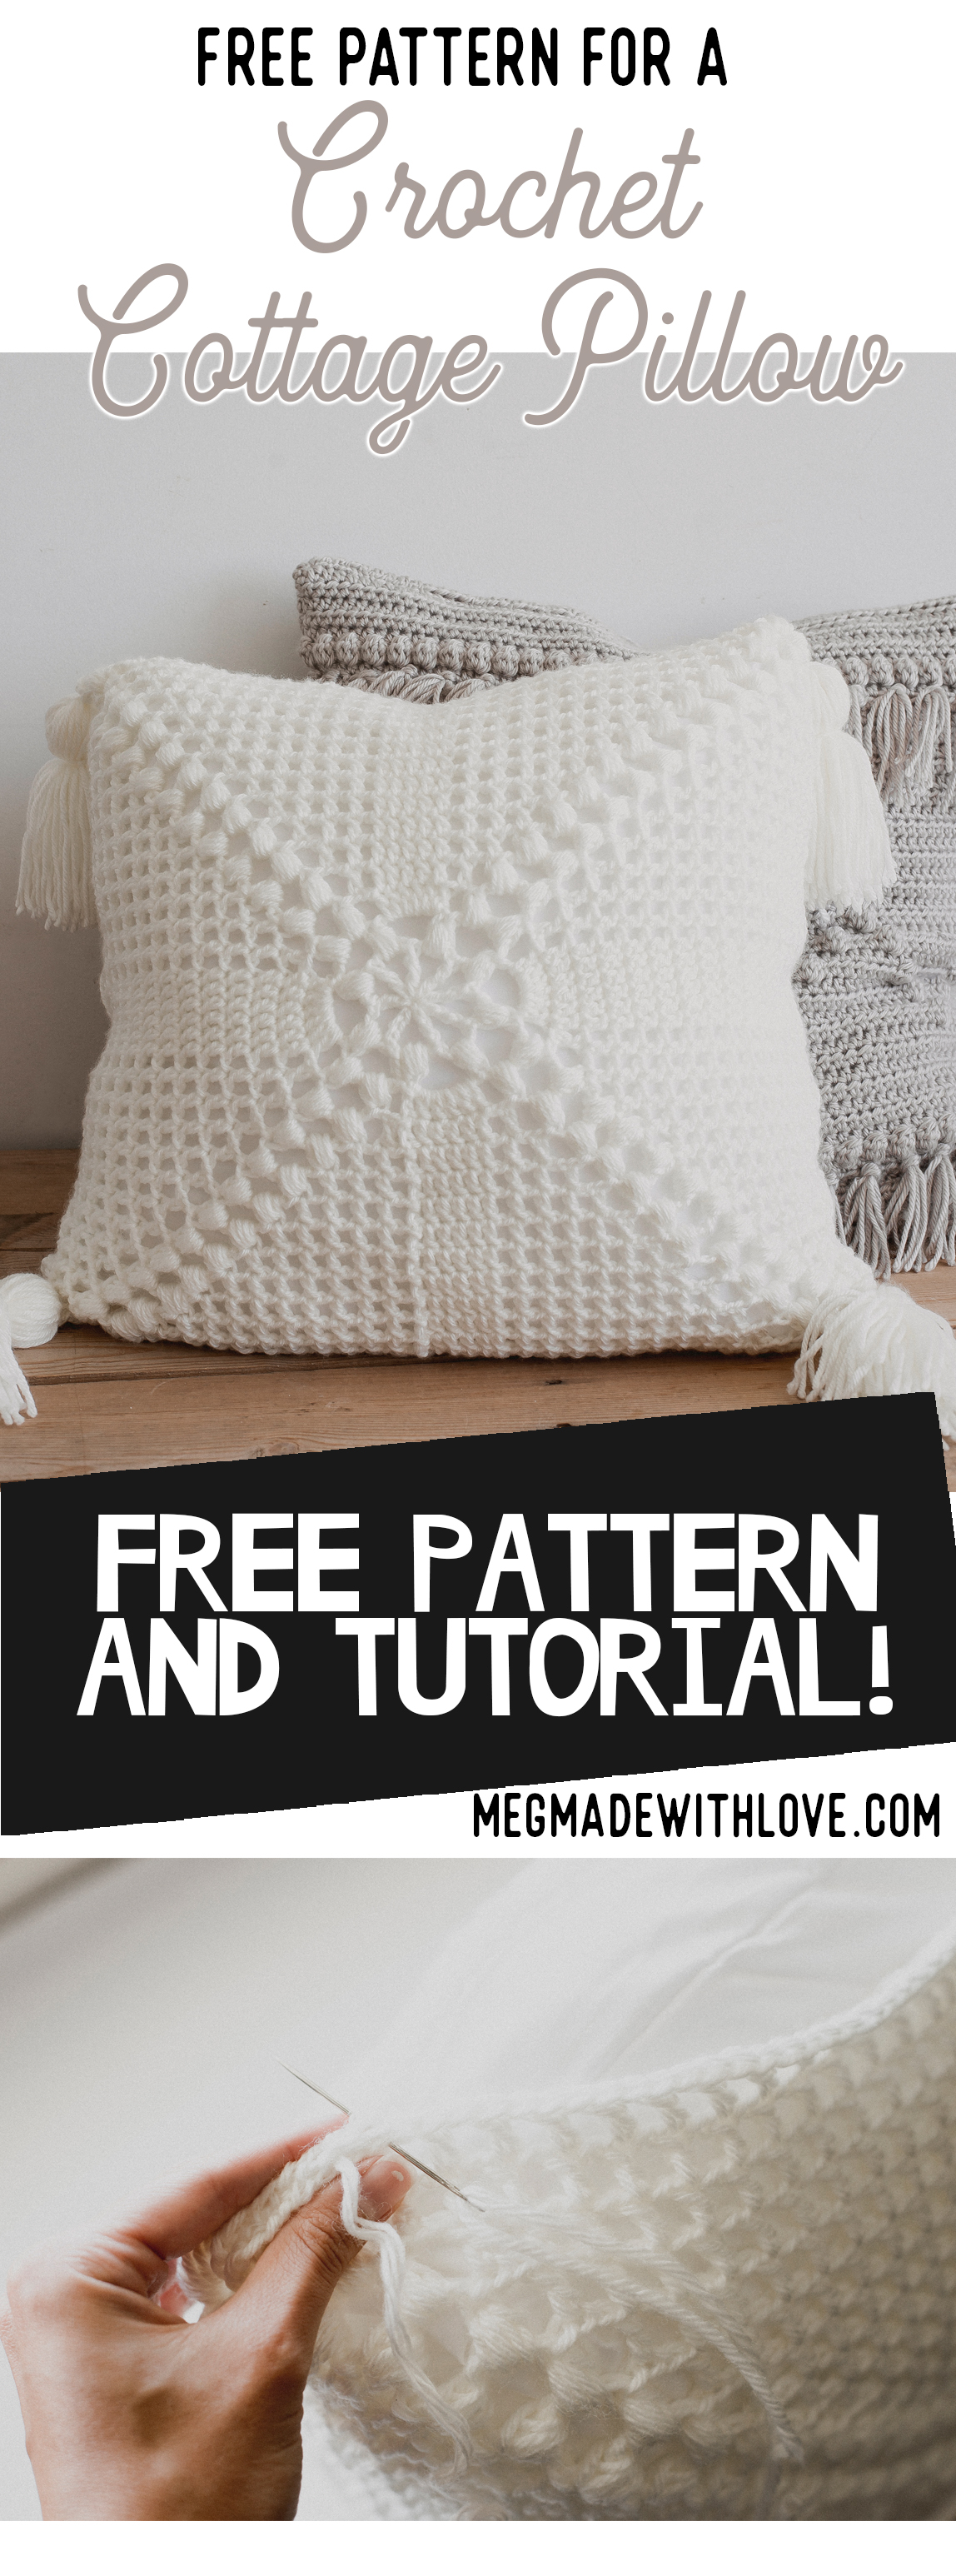 Free Pattern for the Crochet Cottage Pillow - Megmade with Love